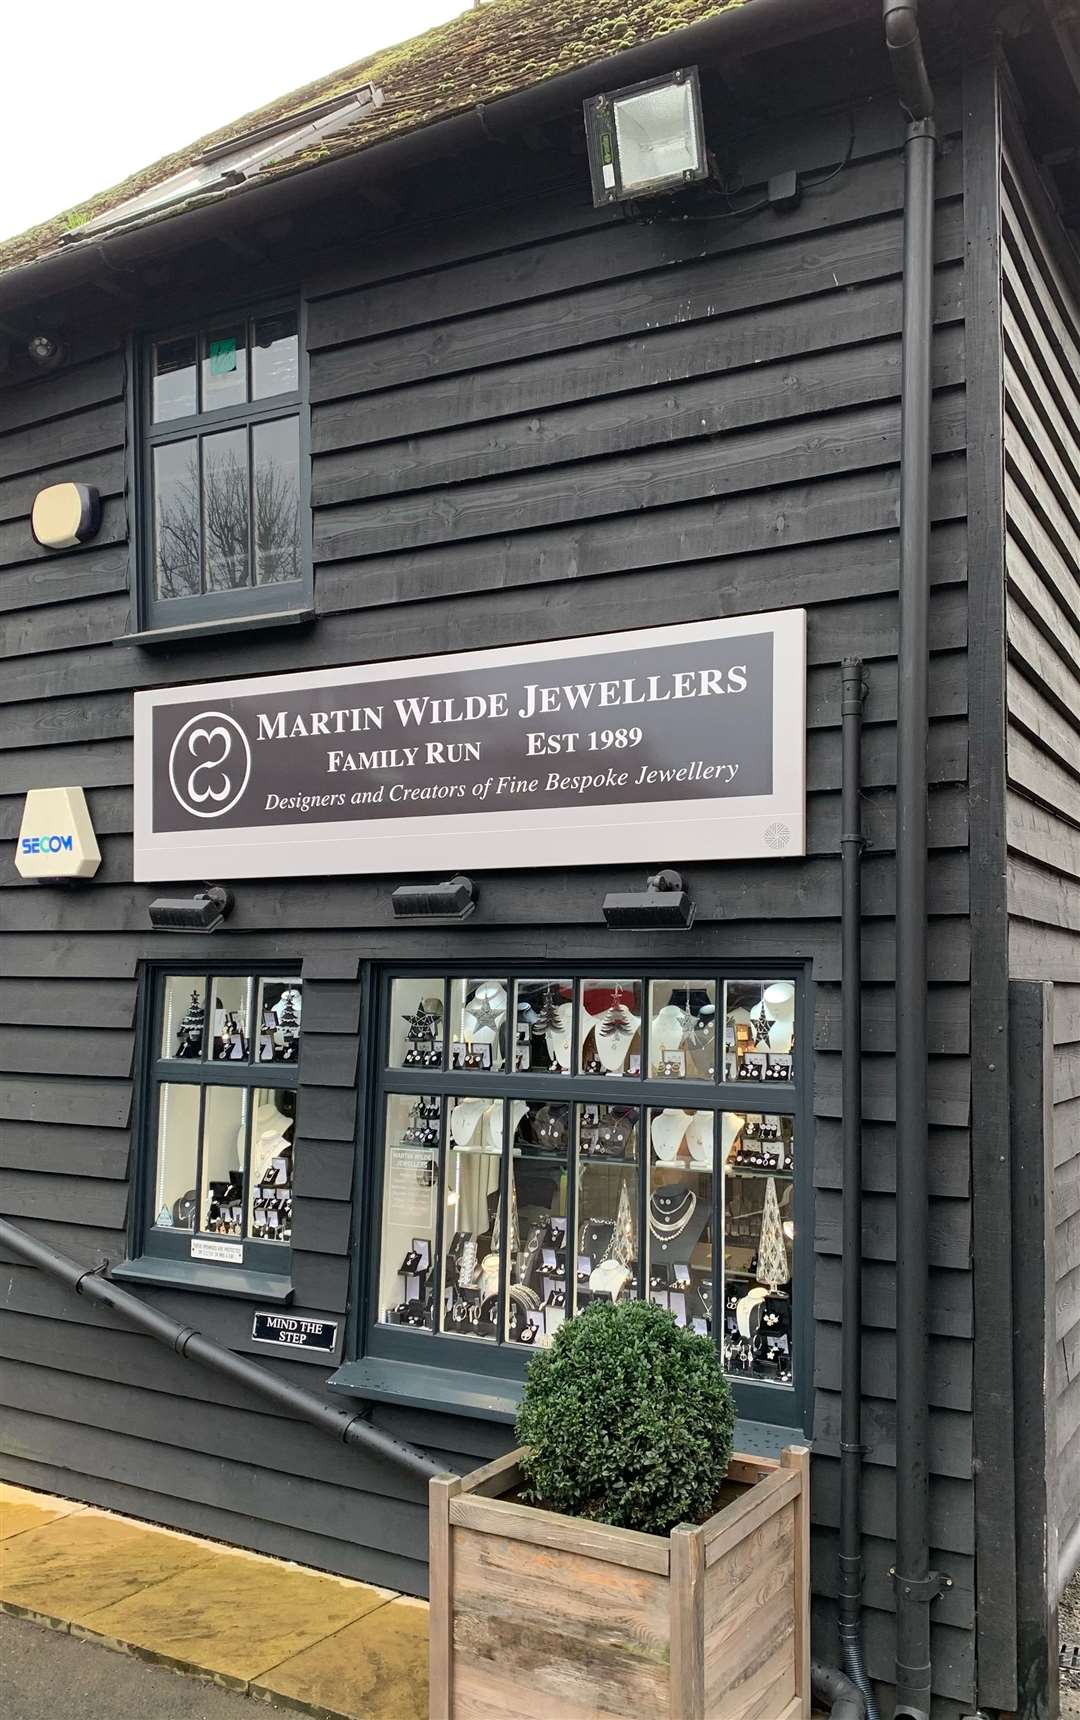 Martin Wilde Jewellers in Tonbridge